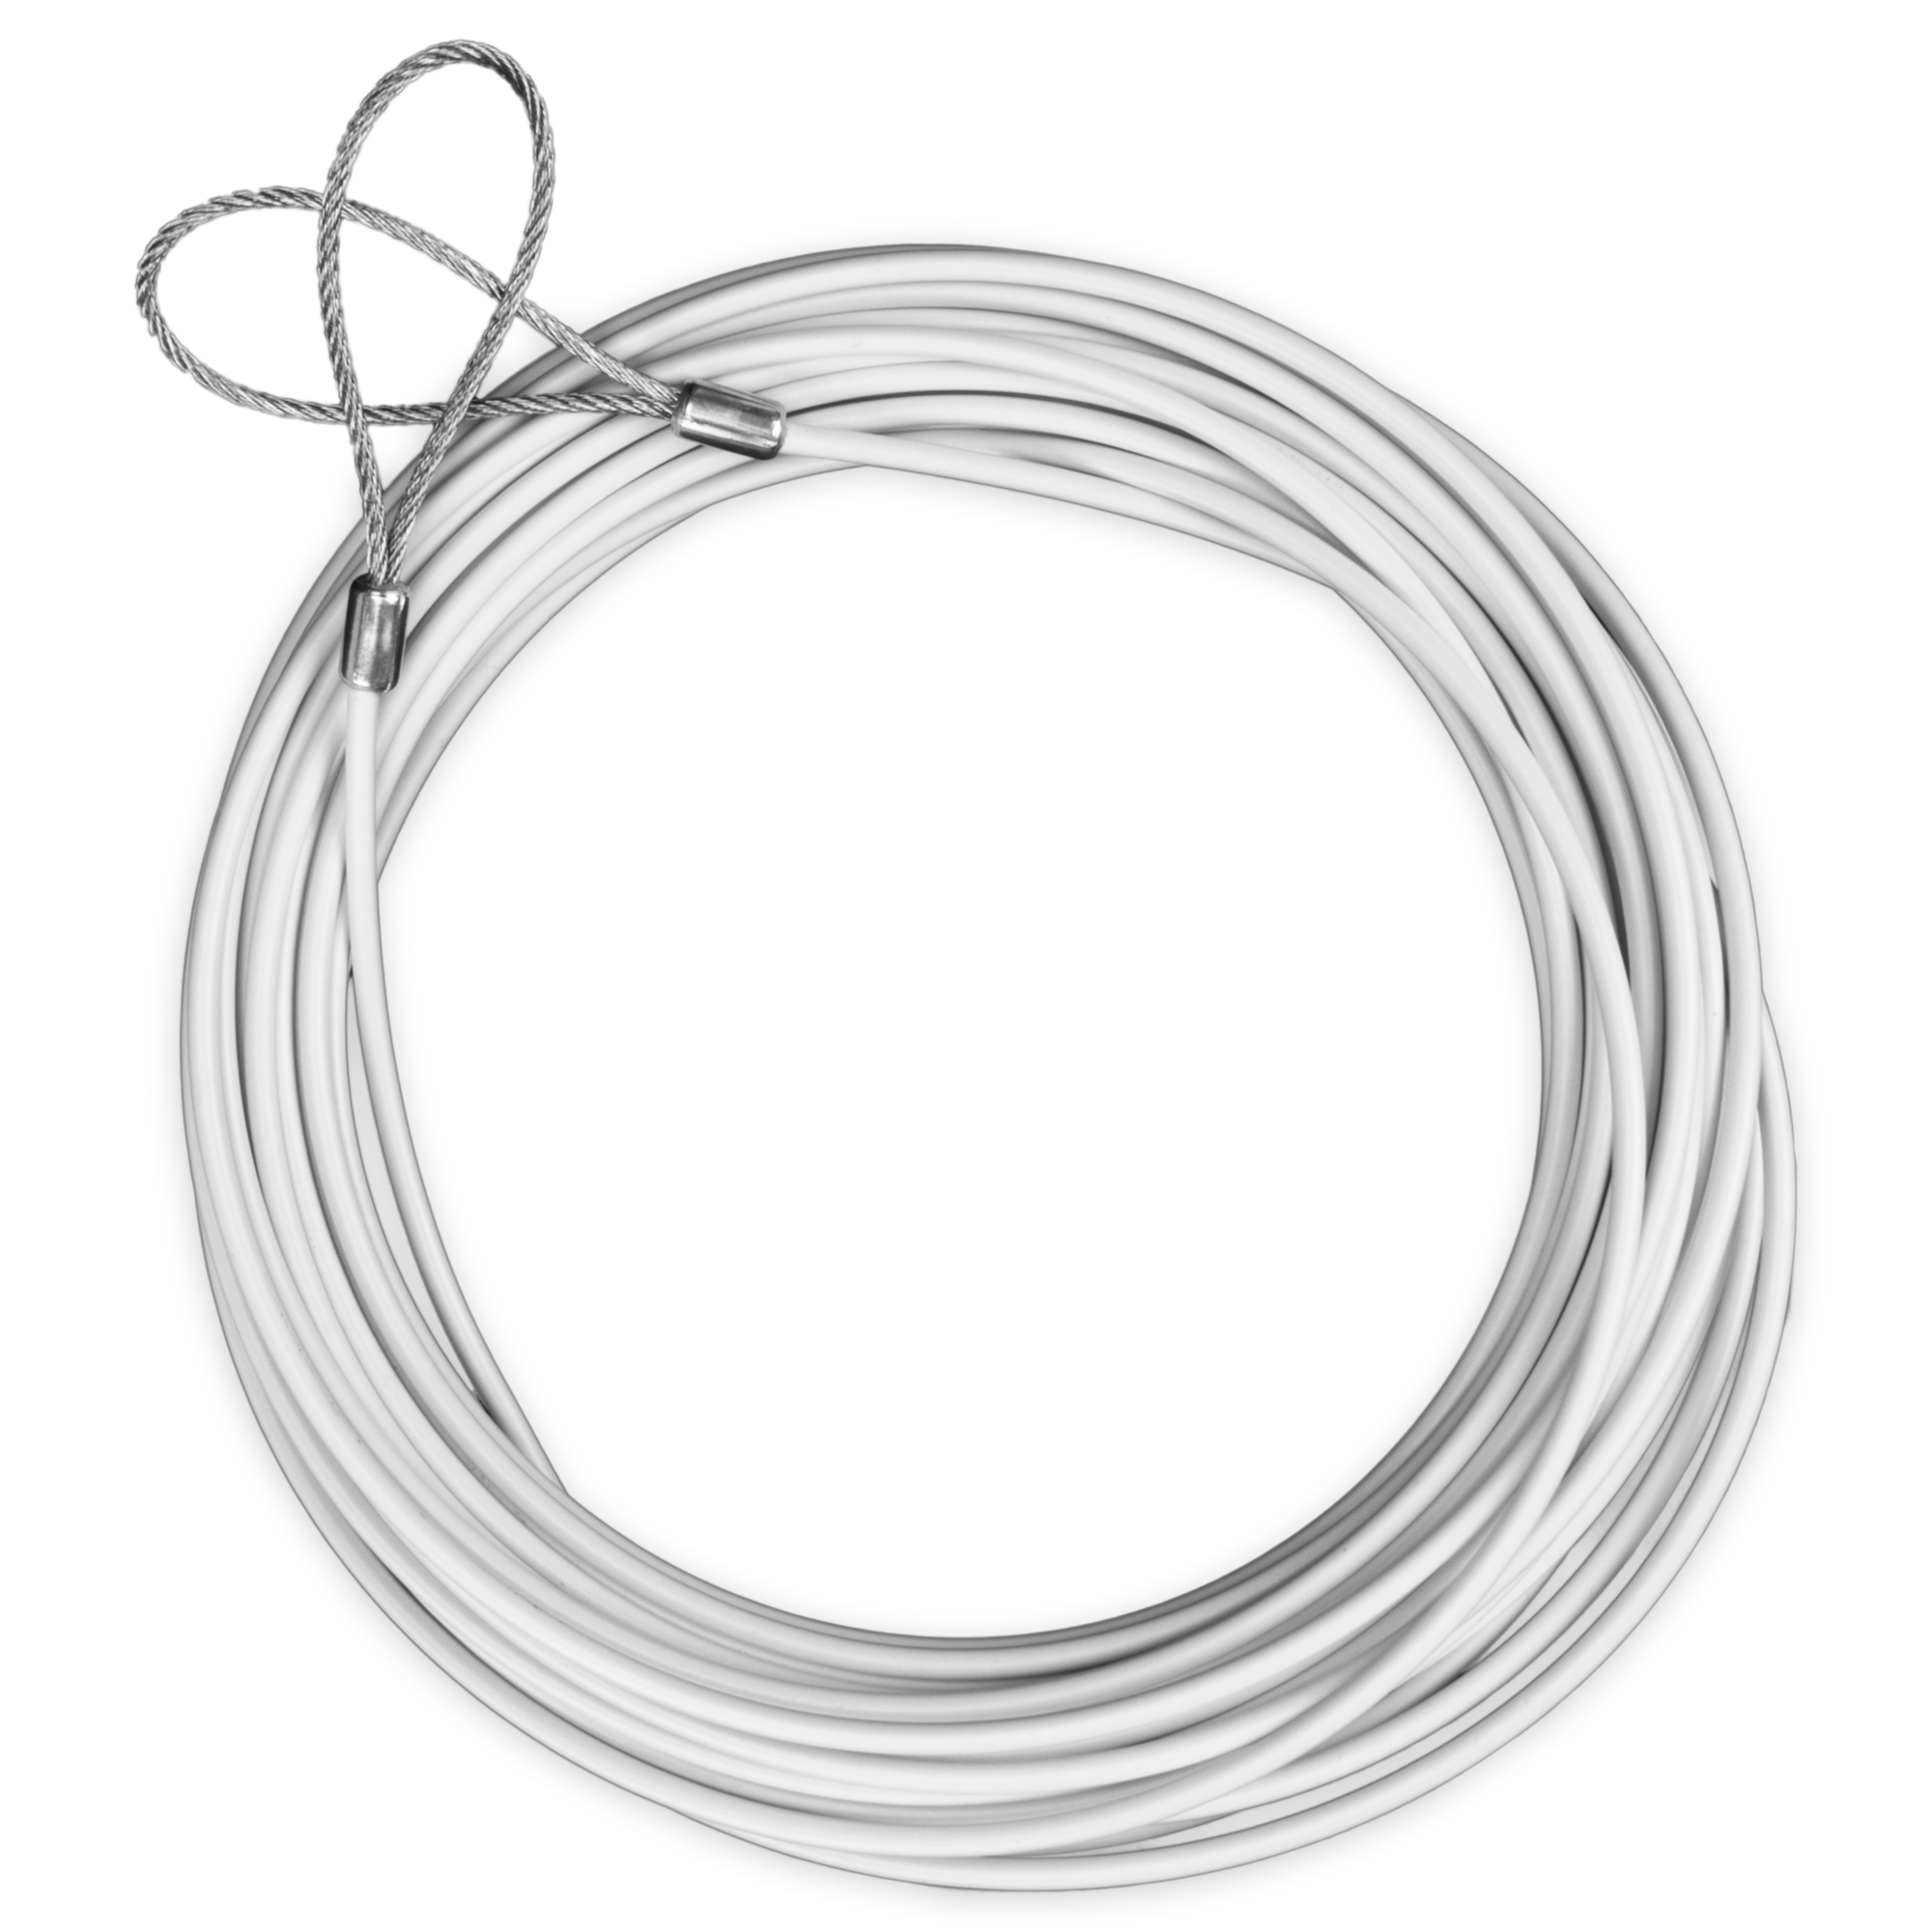 47' Replacement Tennis Net Cable, White